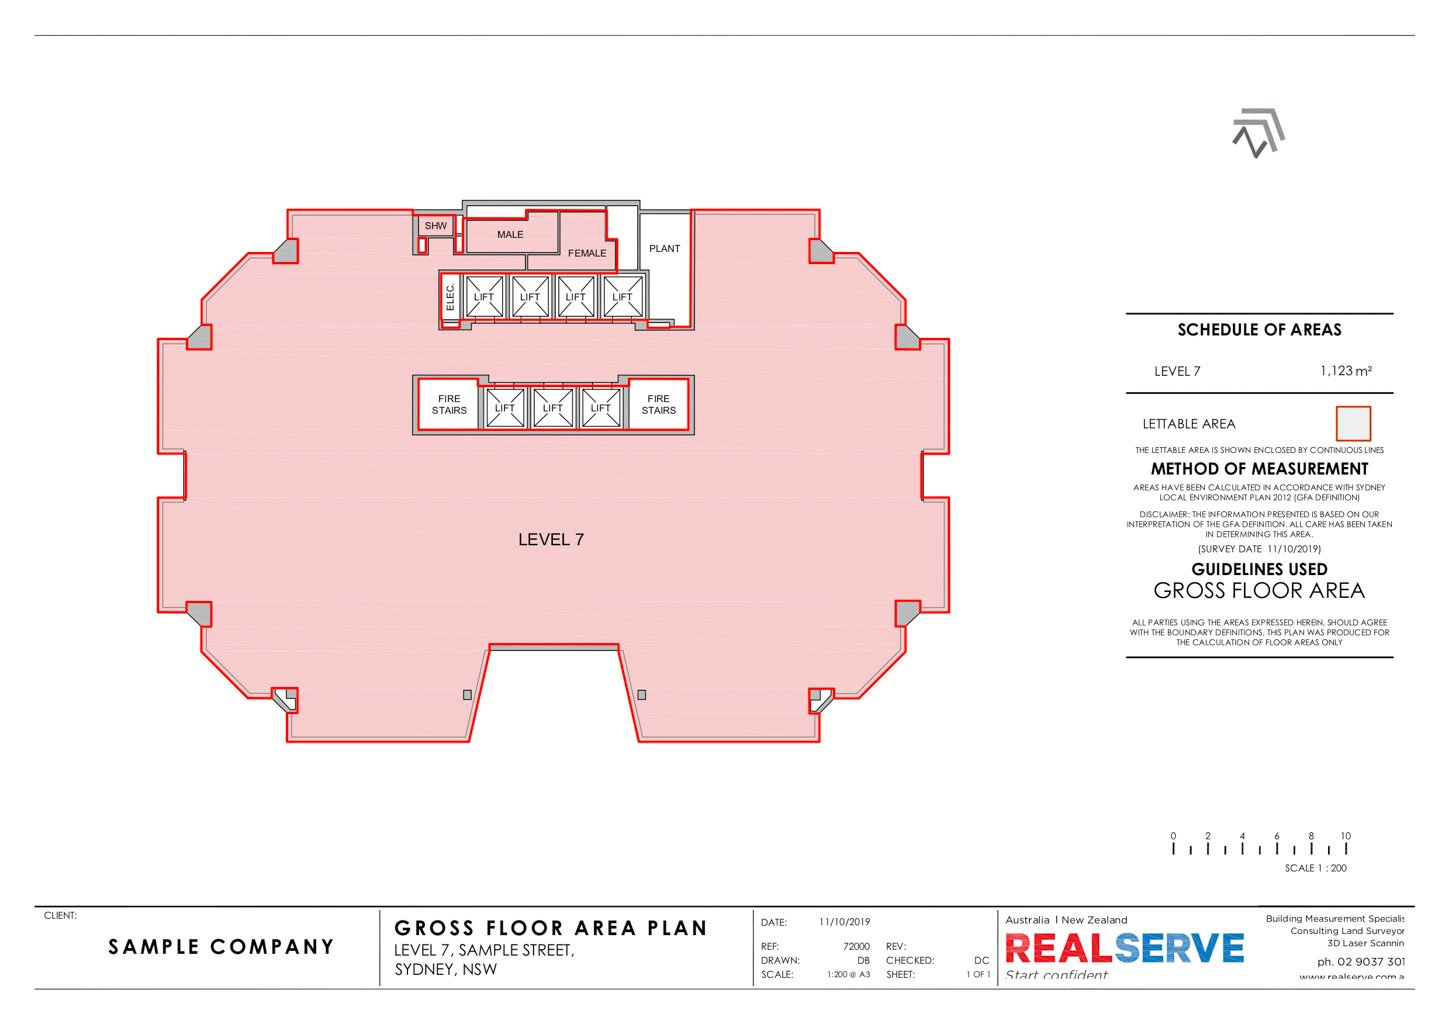 REALSERVE GROSS FLOOR AREA SURVEY SAMPLE OF A COMMERCIAL BUILDING